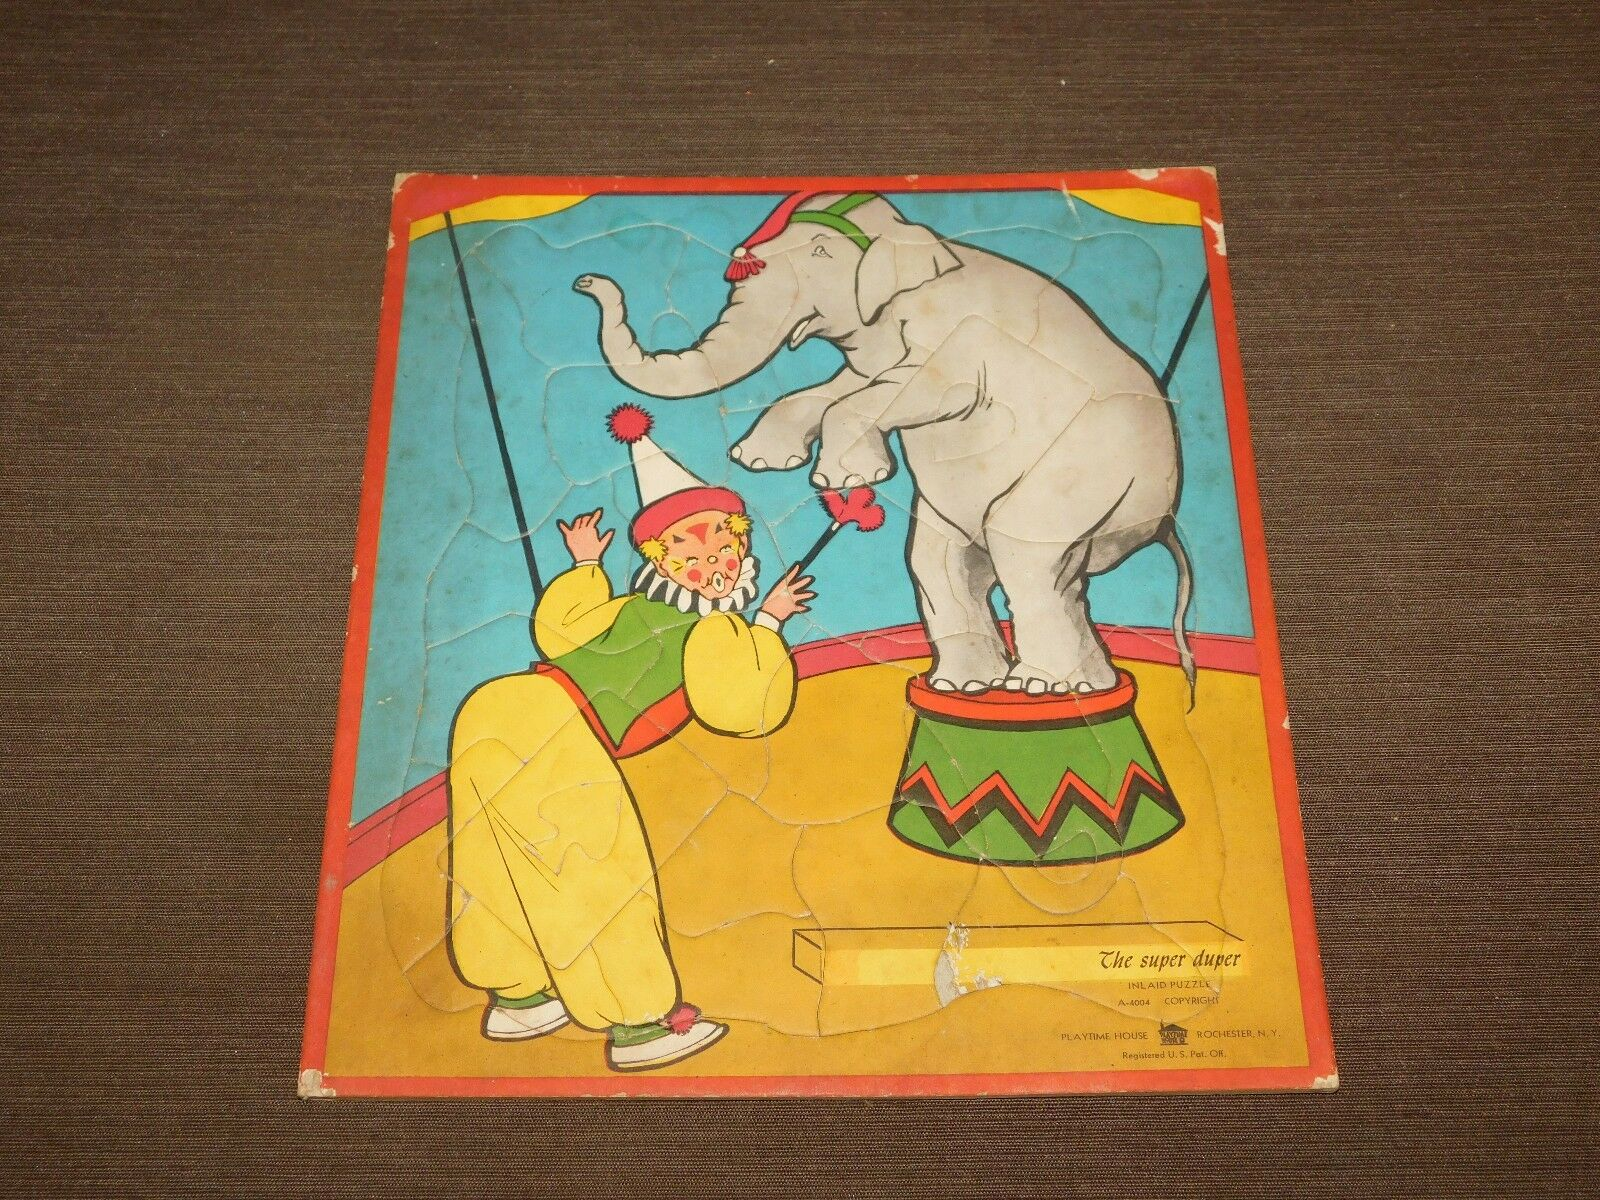 VINTAGE PLAY TIME HOUSE THE SUPER DUPER ELEPHANT CIRCUS CLOWN PUZZLE